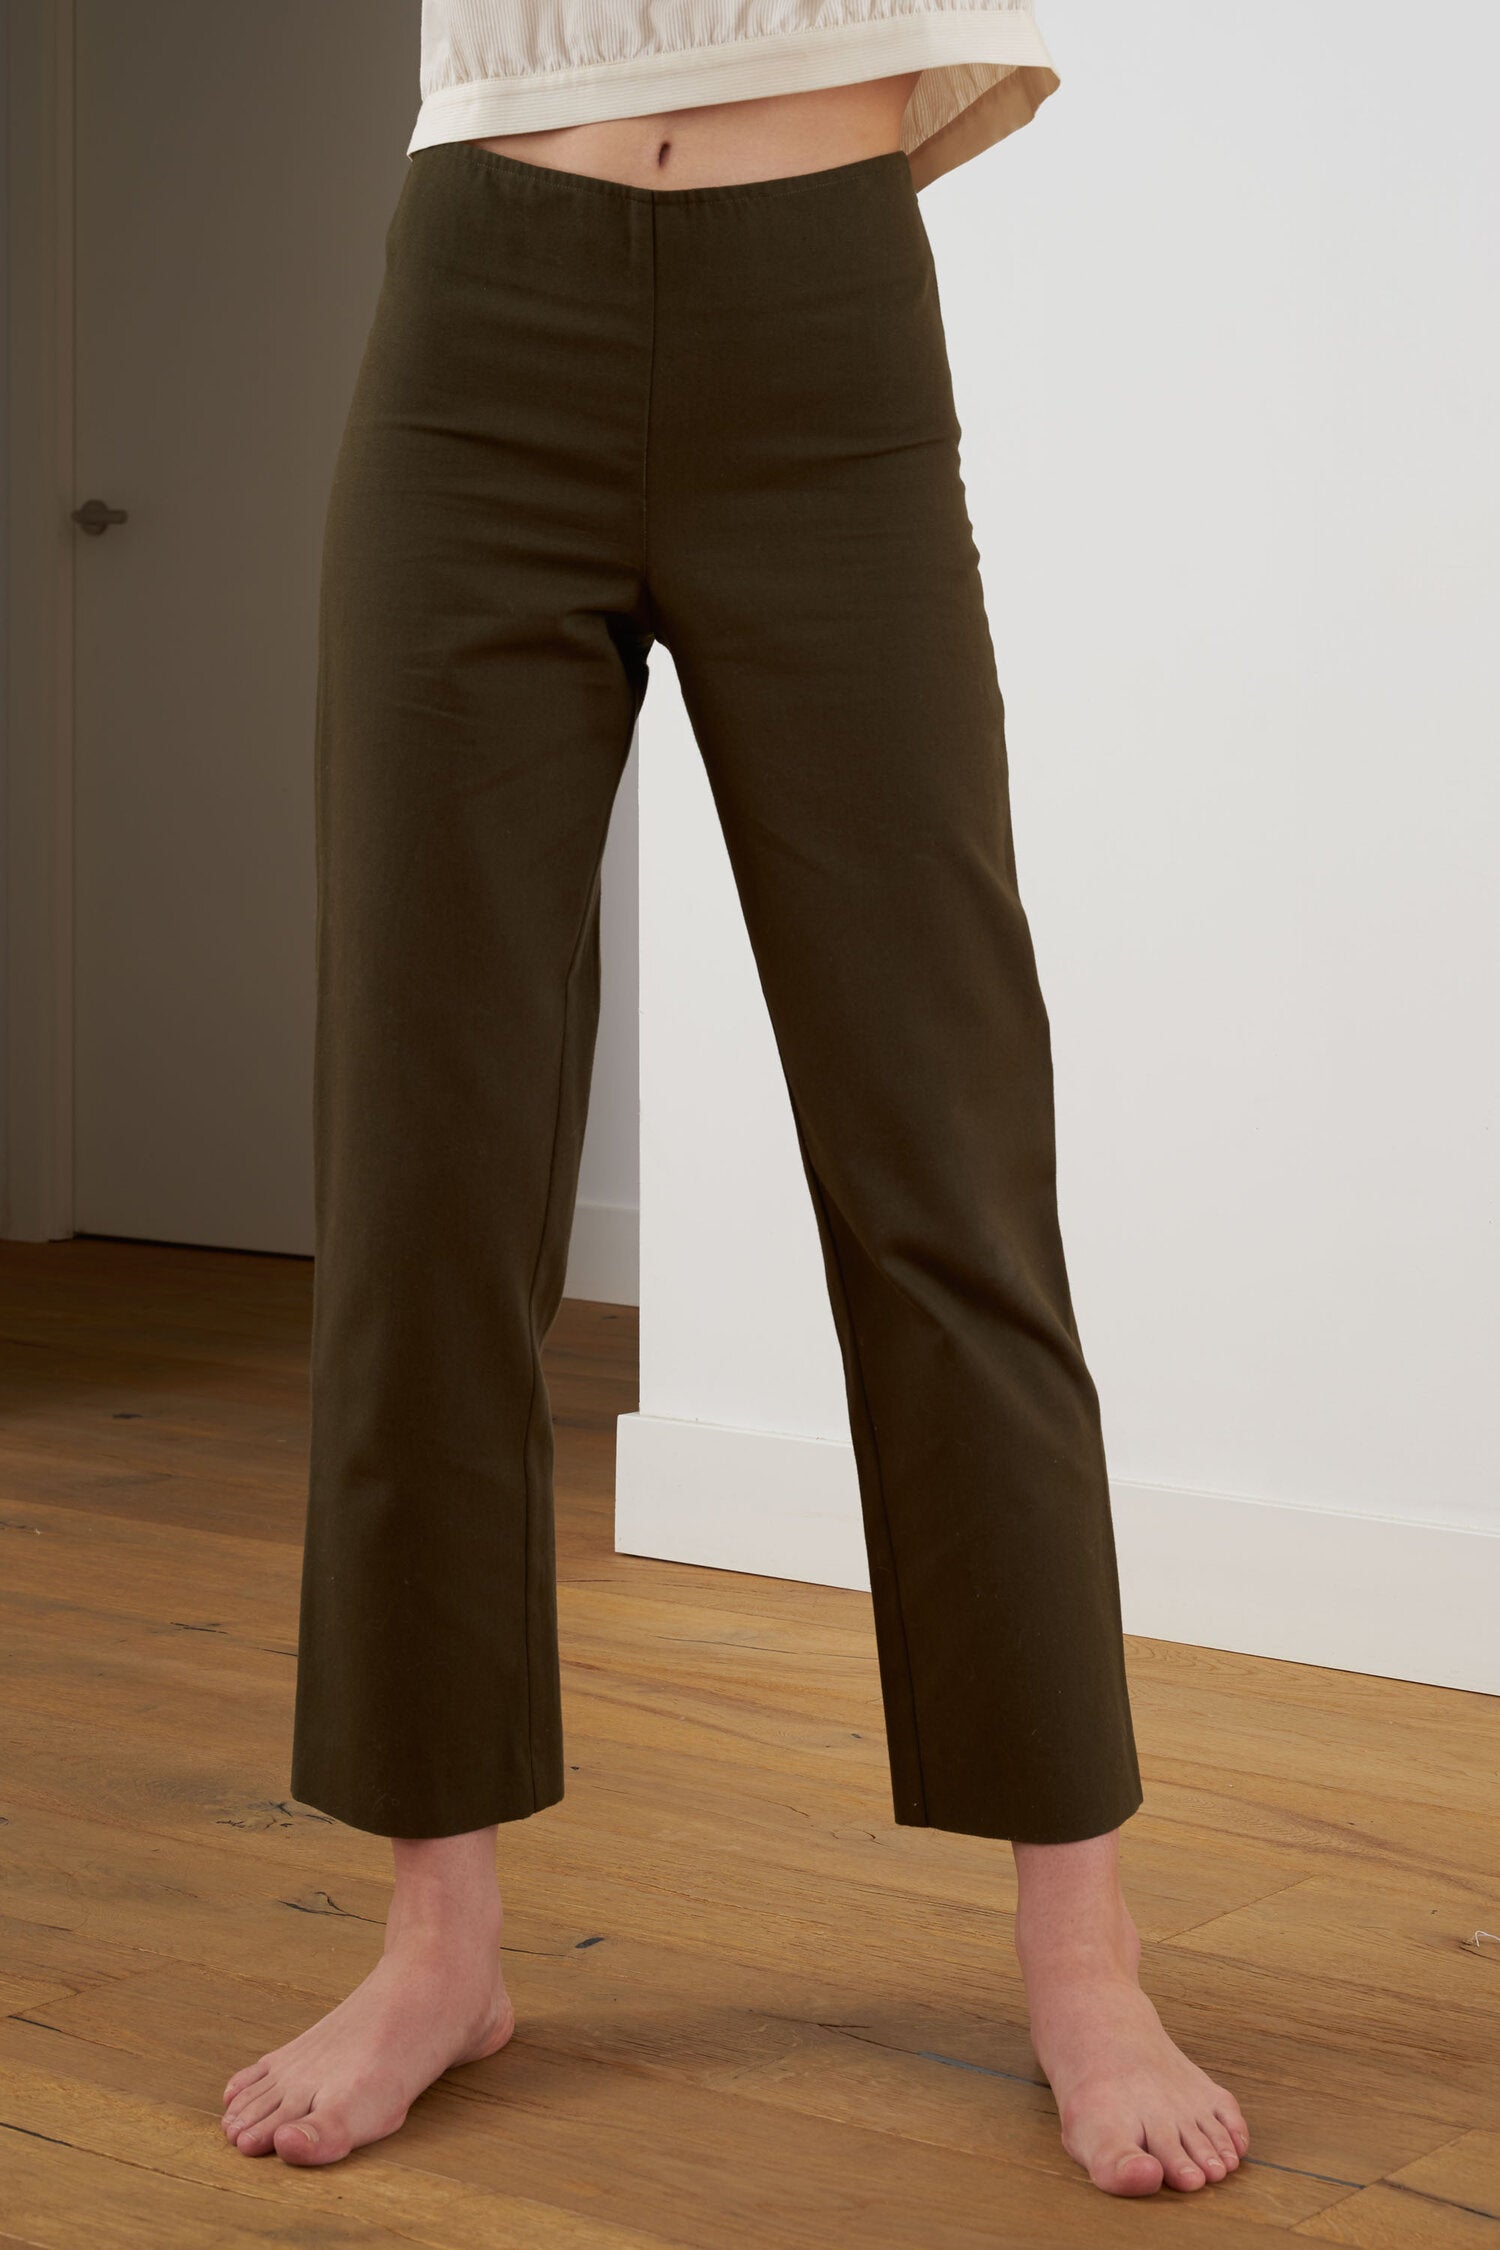 Sunad Caruncho Olivo Trousers with a high-rise waist and straight legs.